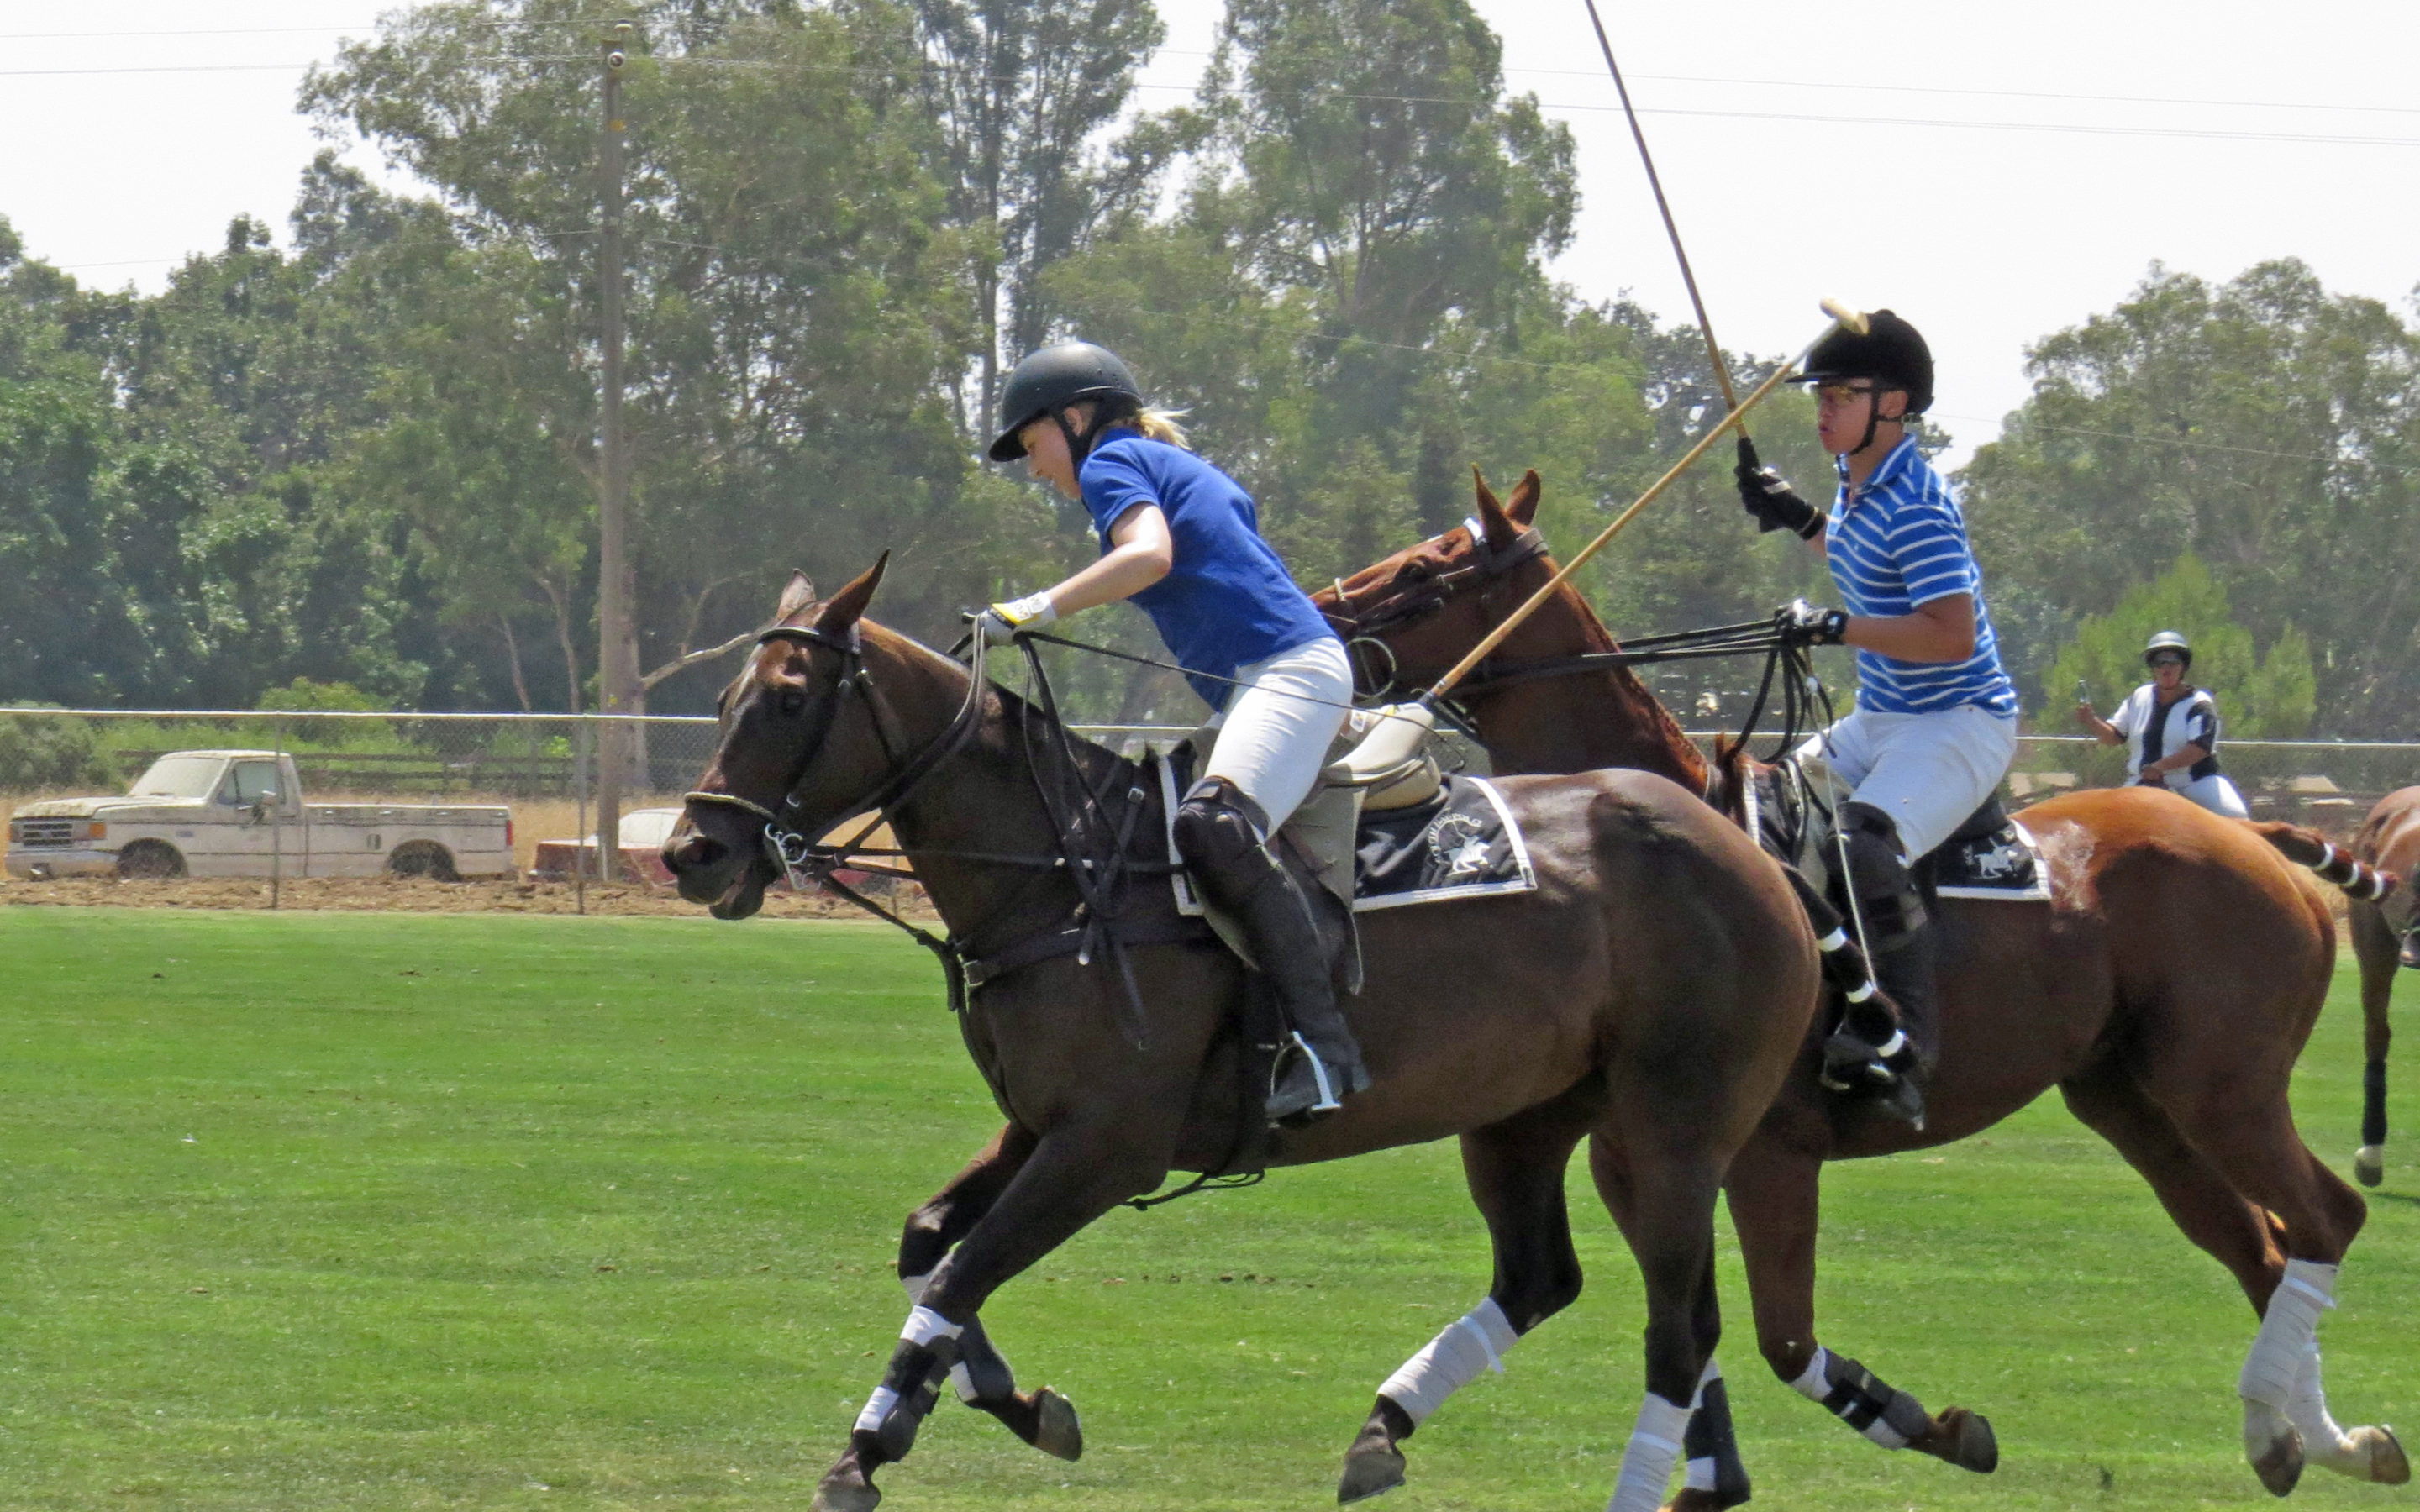 Main story – South Bay Polo Club changes attitudes, encourages diversity